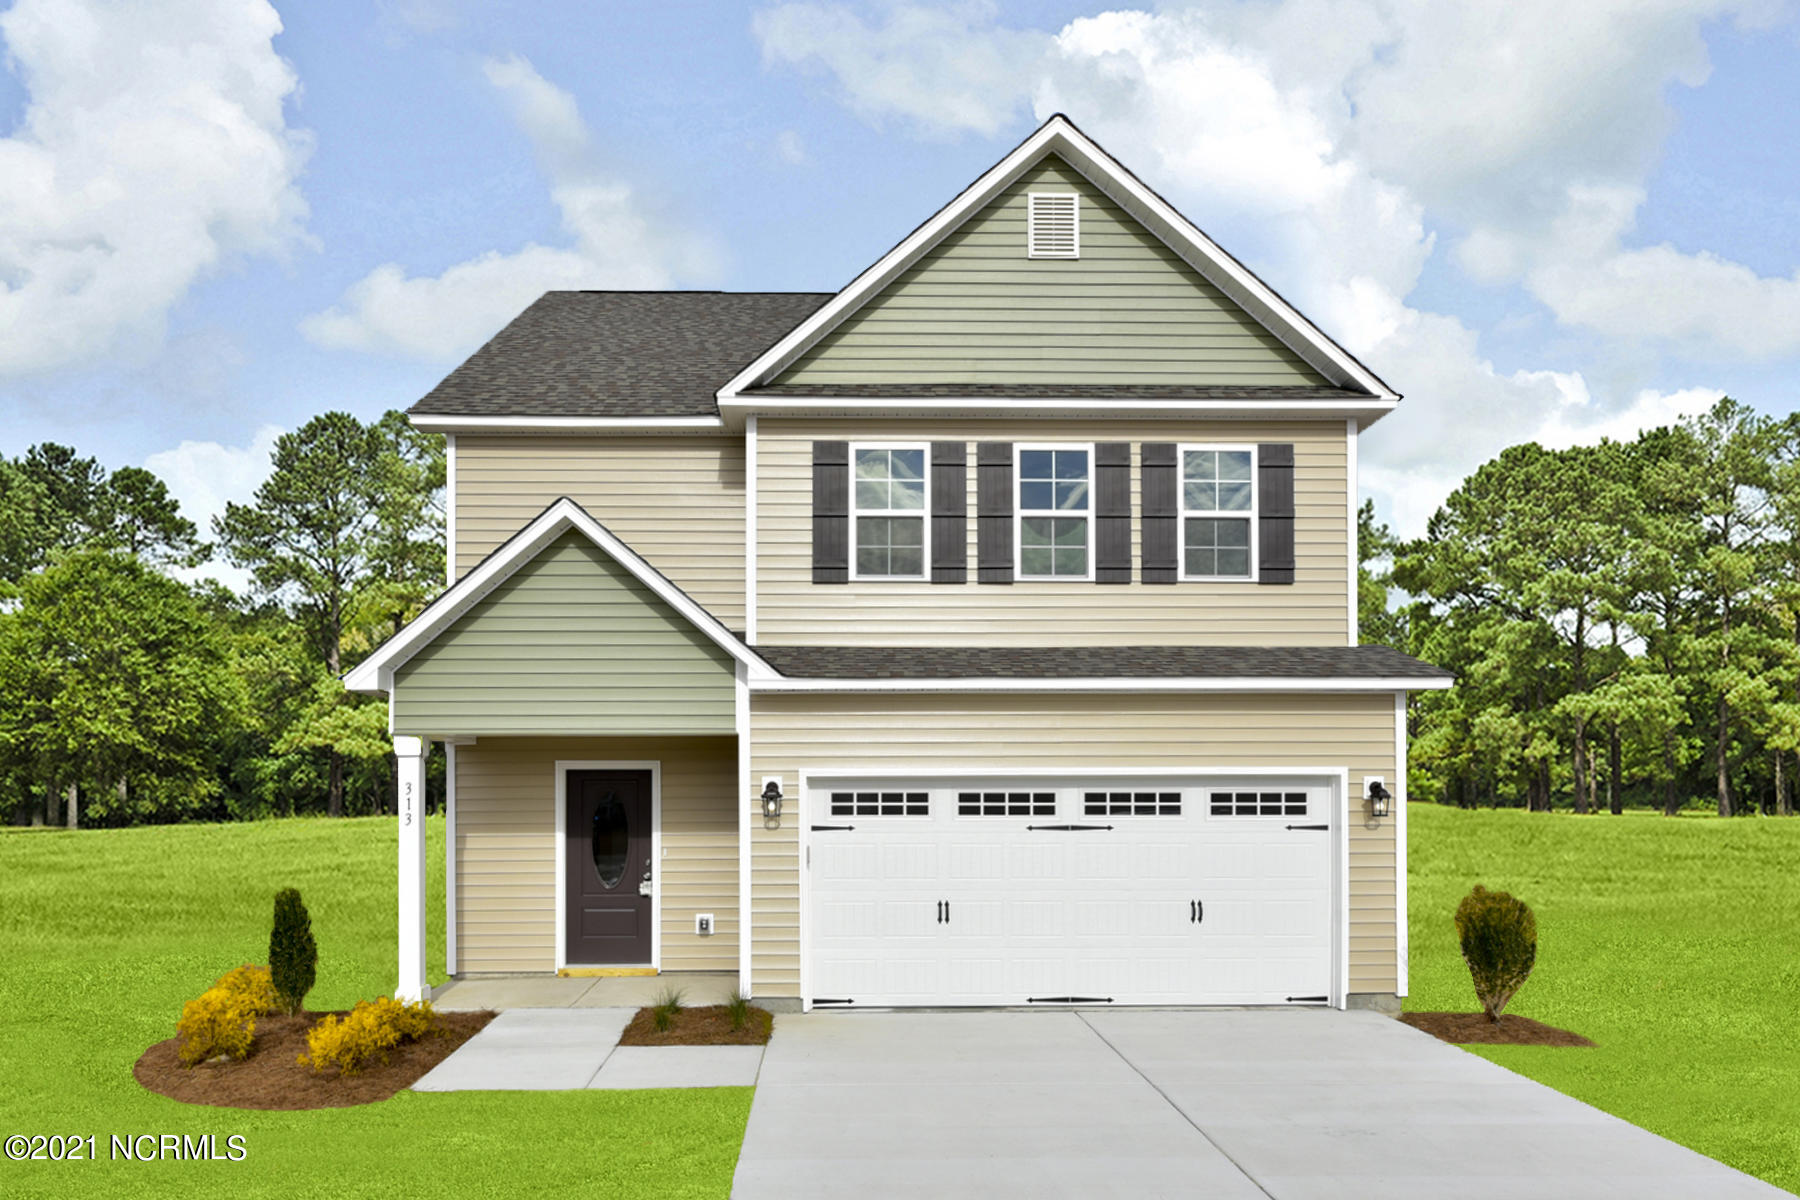 Introducing the ''Lenox'' floor plan at Blue Creek Estates! This new home offers 3 bedrooms, 2.5 bathrooms, and a 2-car garage; at approximately 1,807 heated square feet! Located in a quiet country setting yet only minutes to local bases, schools and shopping! Featuring architectural shingles, low maintenance vinyl siding, energy efficient heat pump, a sodded front yard, and professional landscaping. Interior features include designer inspired paint, flooring, lighting, cabinets and countertops. In addition, you will enjoy smooth ceilings, ceiling fans in the living room and master bedroom, plus stainless-steel appliances! Contact me today for more information.